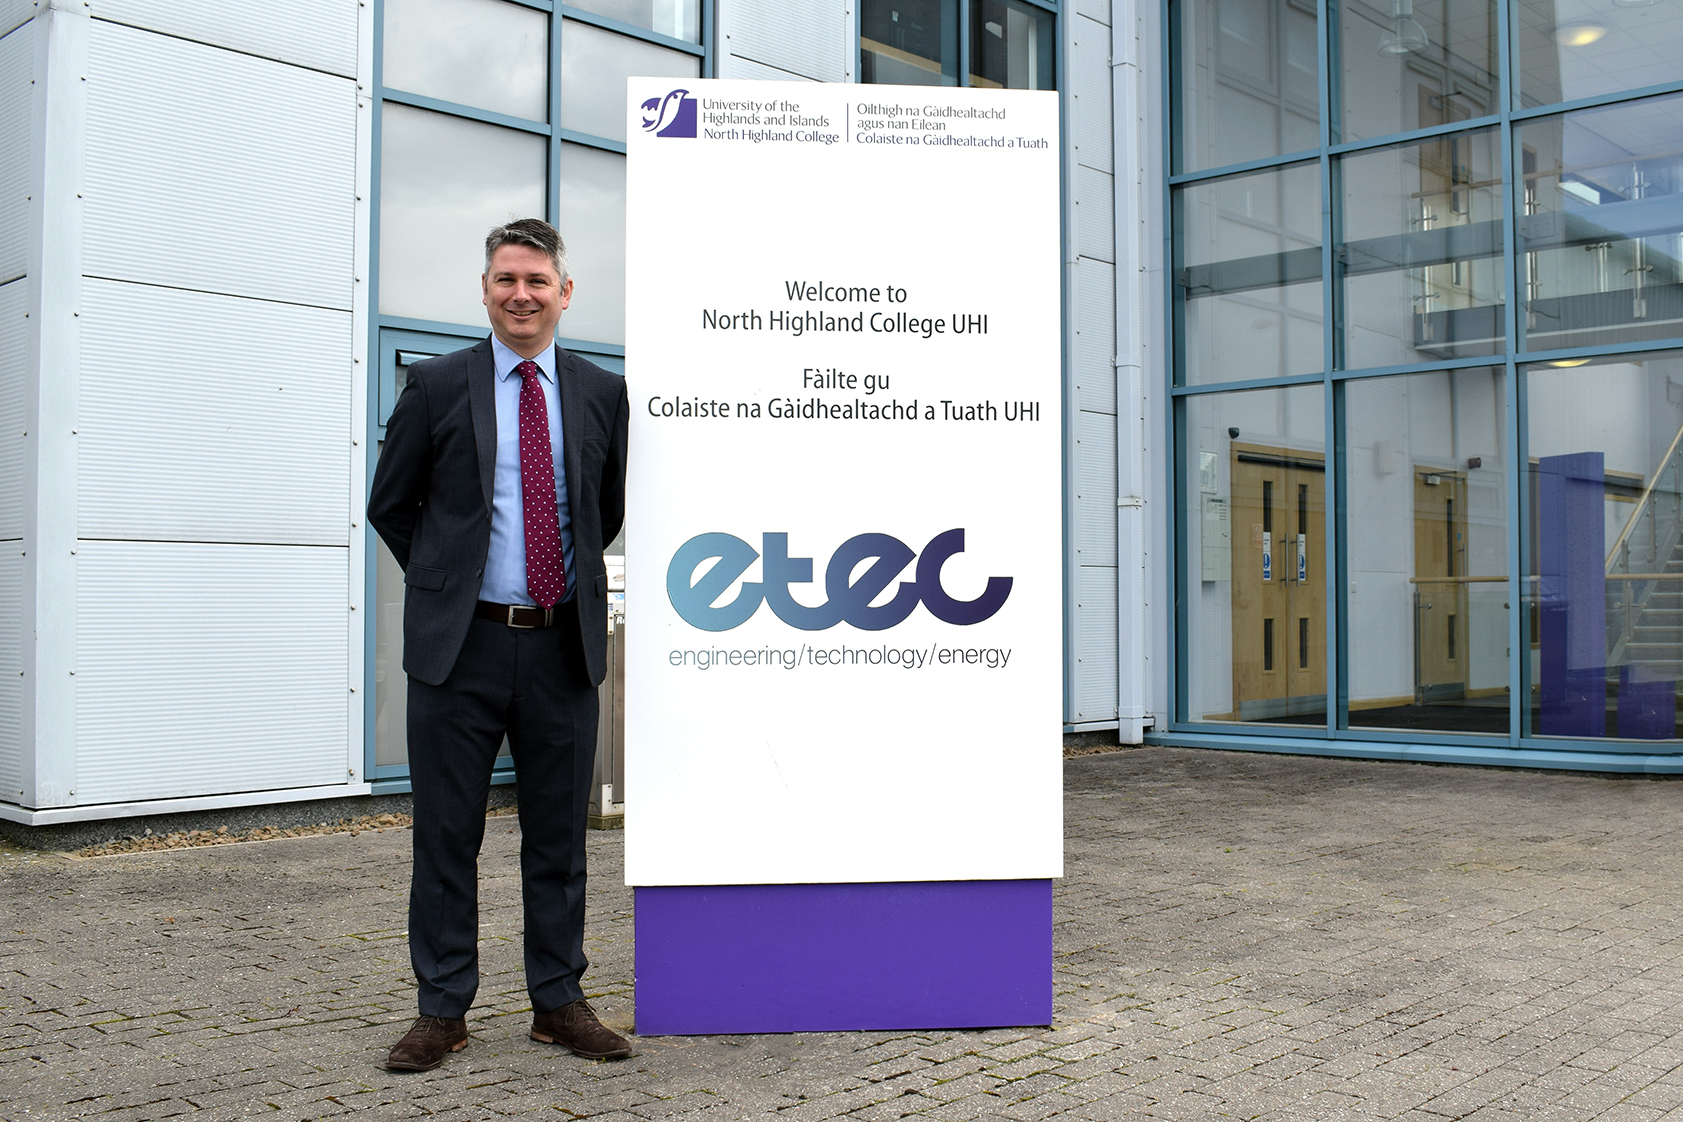 North Highland College UHI appoints new Engineering Technology and Energy Centre Director